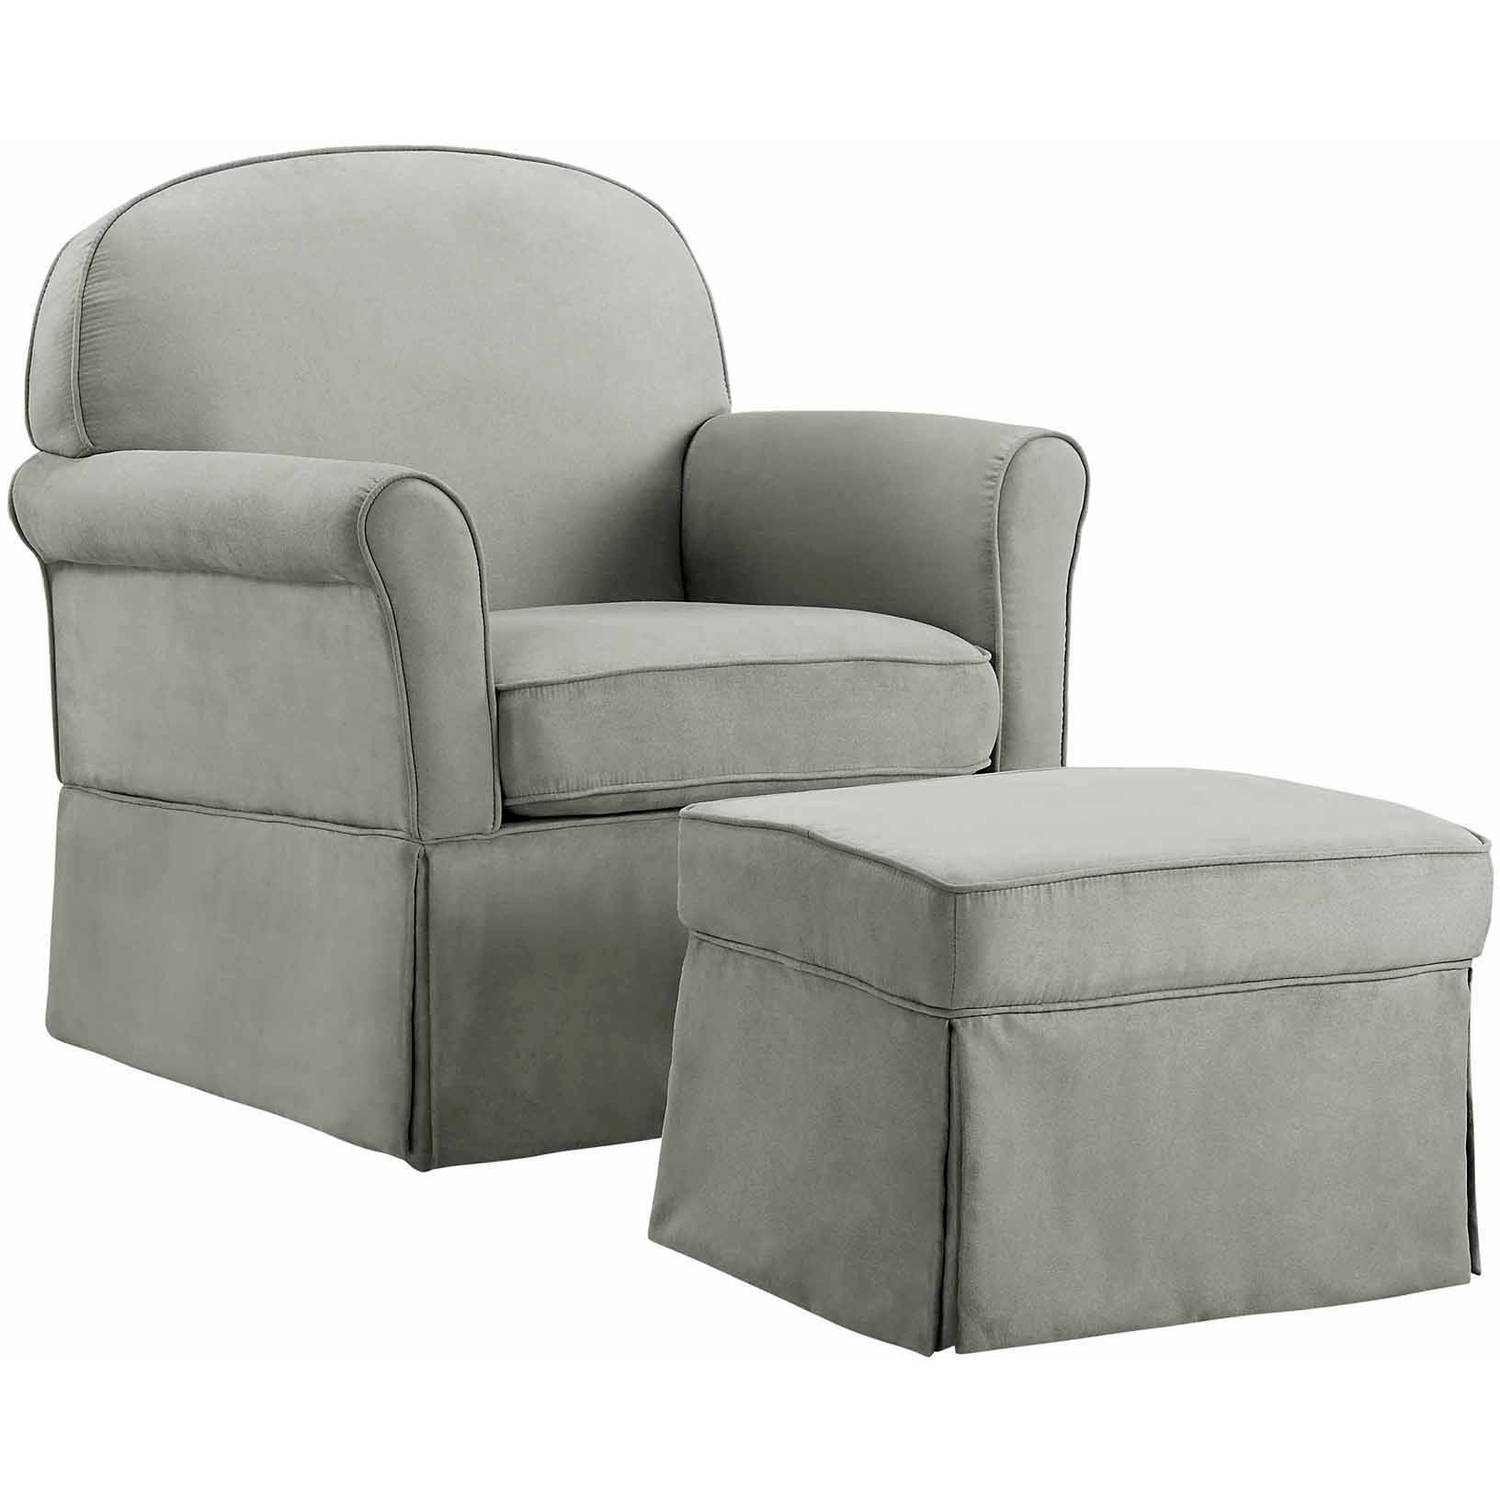 Baby Nursery Chairs Baby Relax Evan Swivel Glider And Ottoman Gray